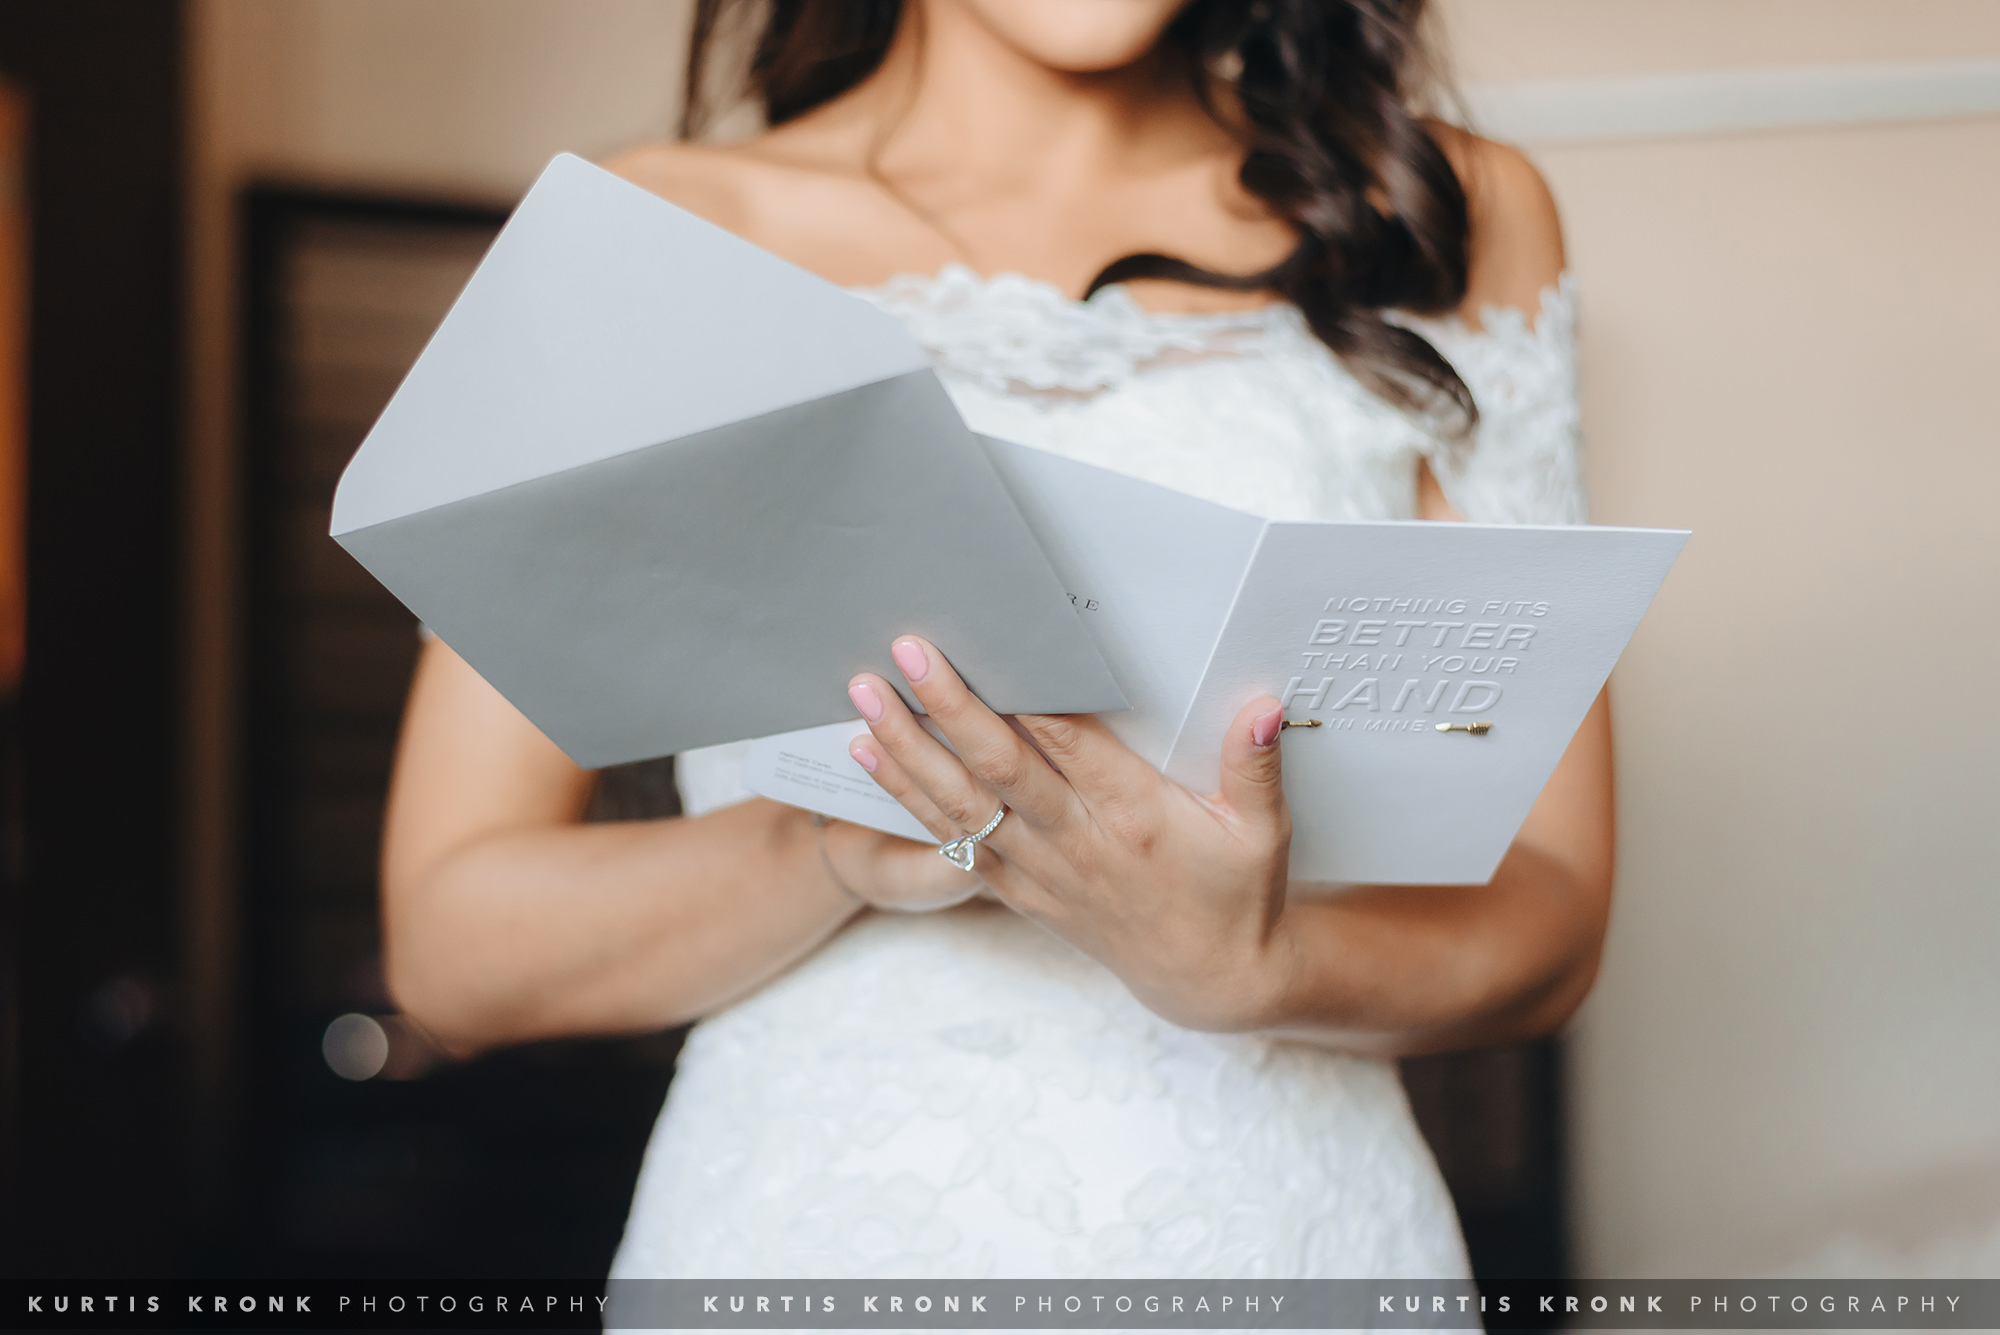 Mission San Jose + Hotel Emma Wedding in San Antonio, TX - Eva & Tommy. San Antonio Wedding Photographer. Texas Wedding Photographer.  Houston Wedding Photographer. Austin Wedding Photographer. Kurtis Kronk Photography.